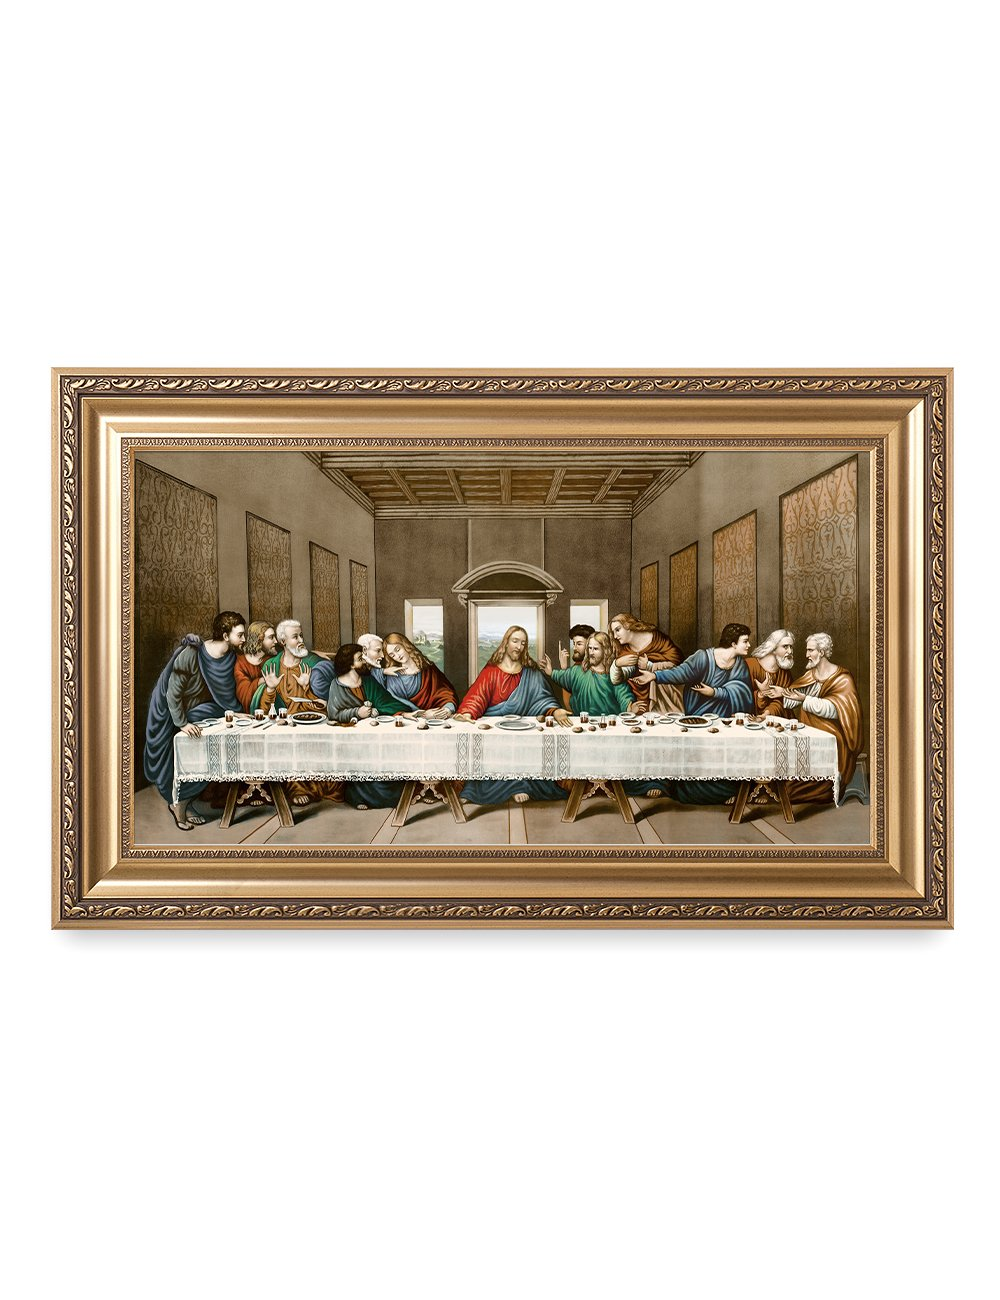 DECORARTS The Last Supper, Leonardo Da Vinci Classic Reproductions, Giclee Print and Museum Quality Framed Art for Wall Décor, 30'' L